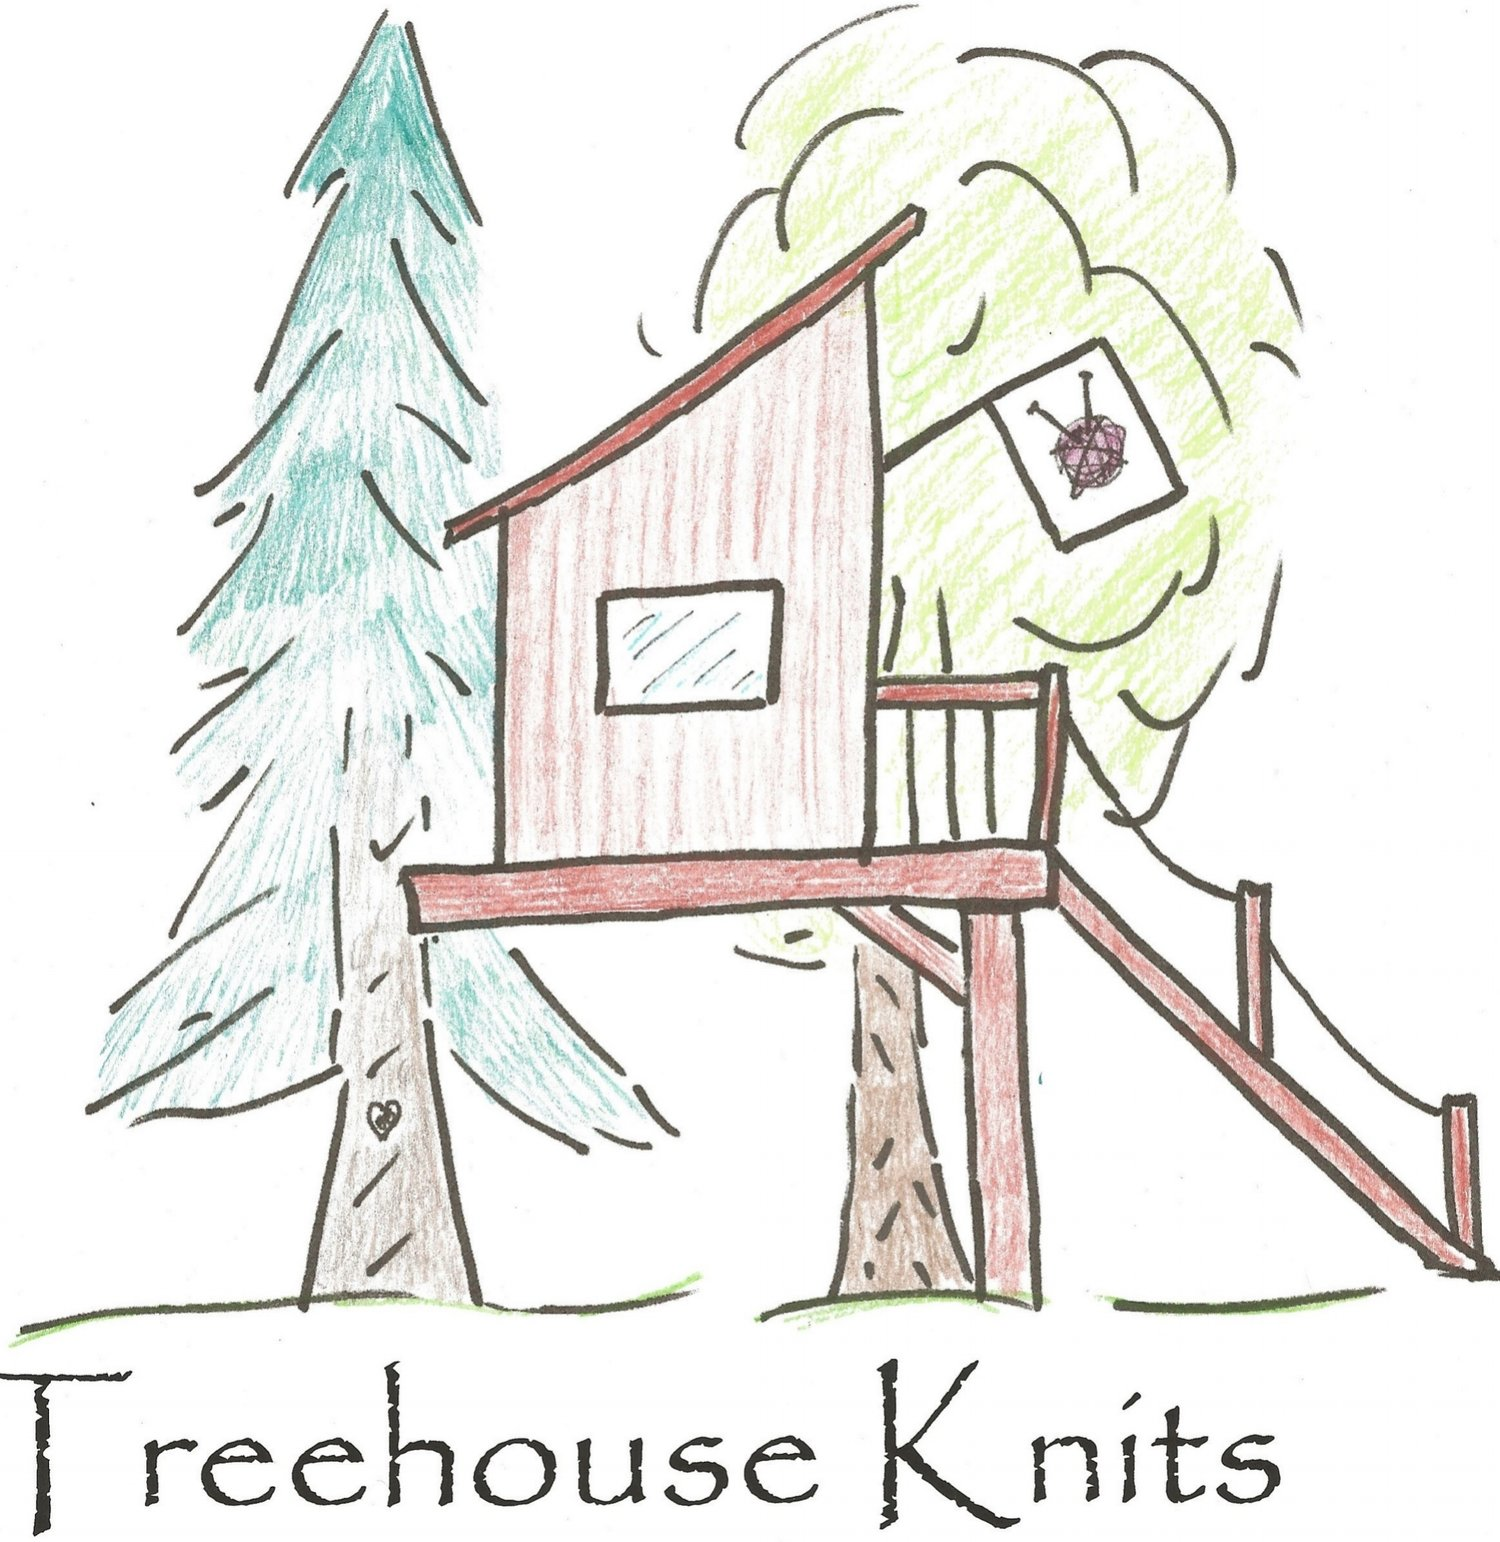 Treehouse Knits